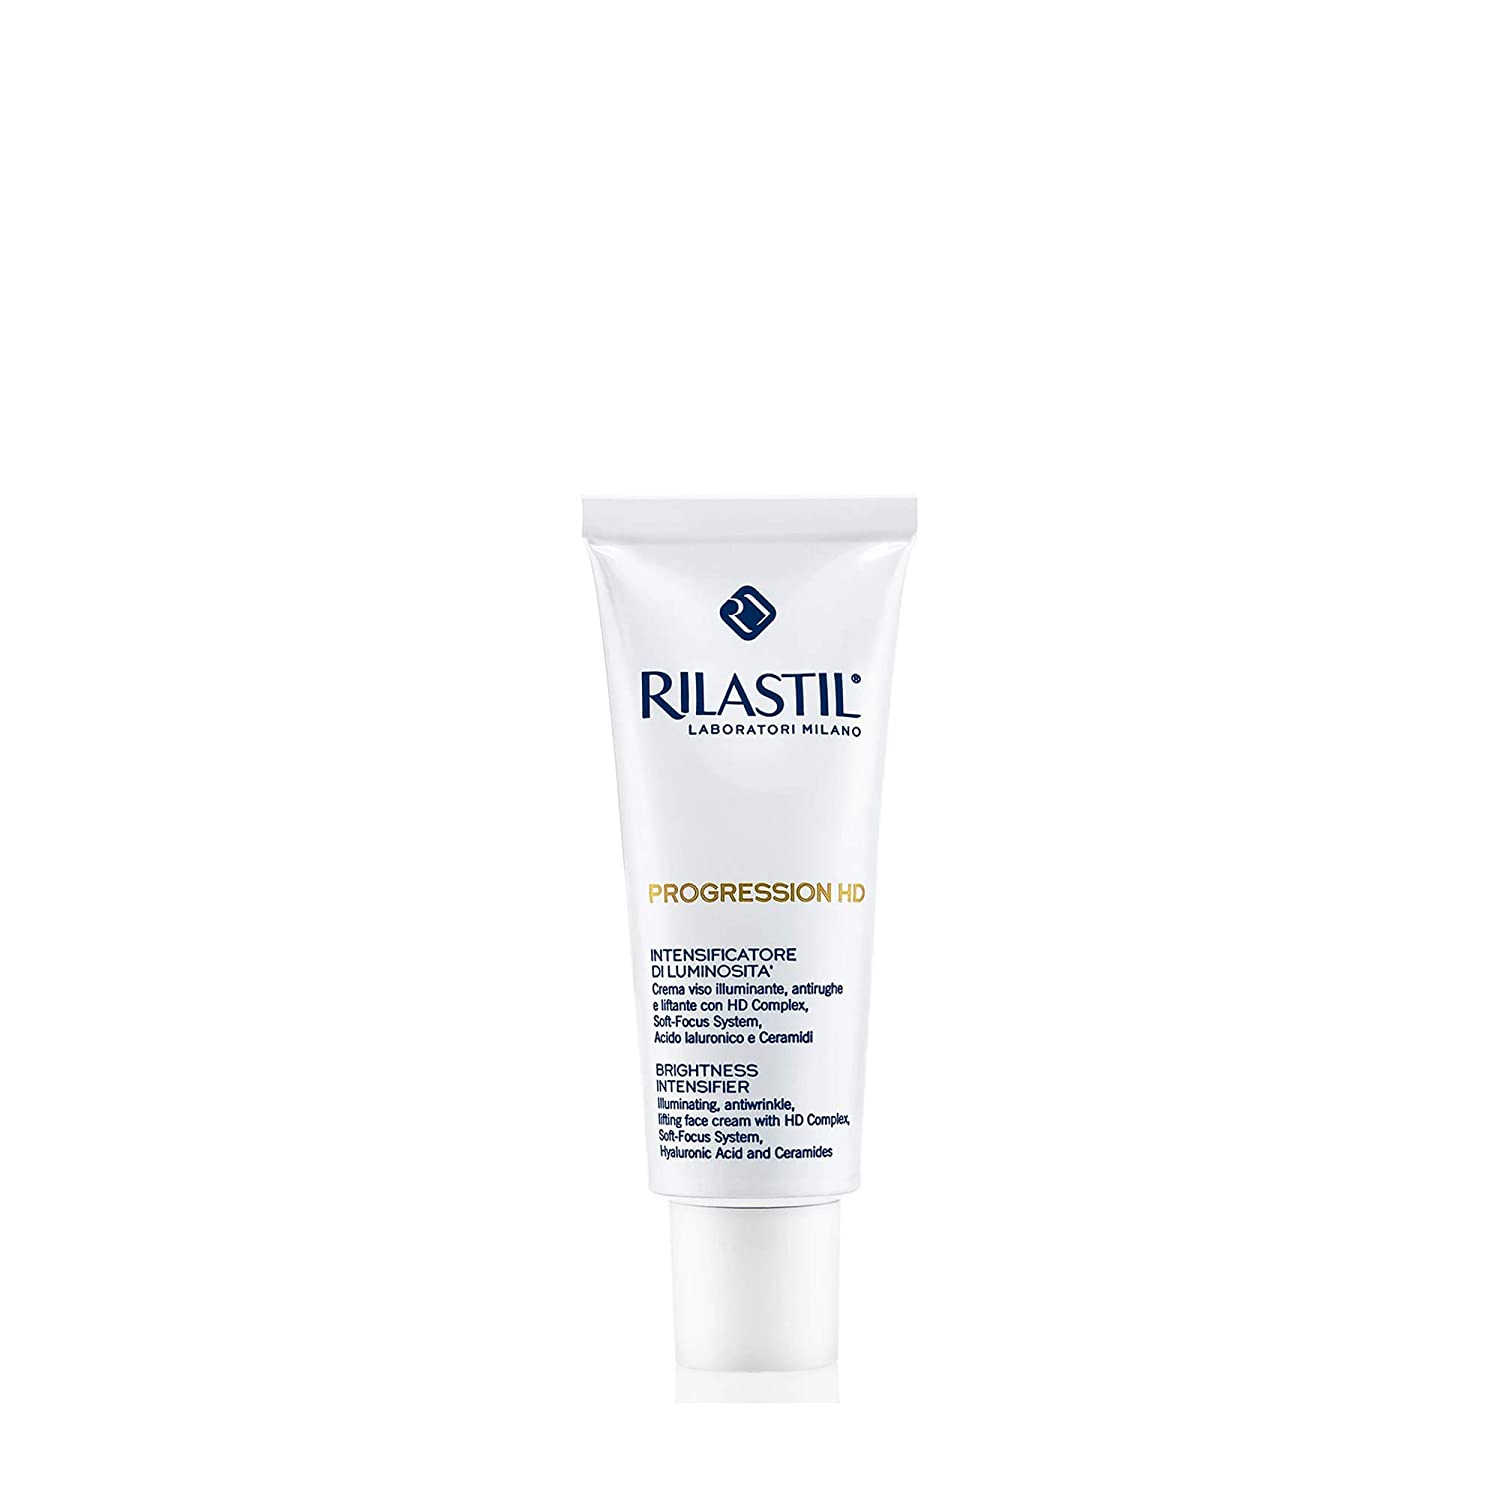 Rilastil Progression HD Brightness Intensifier - Cream - 50 ml